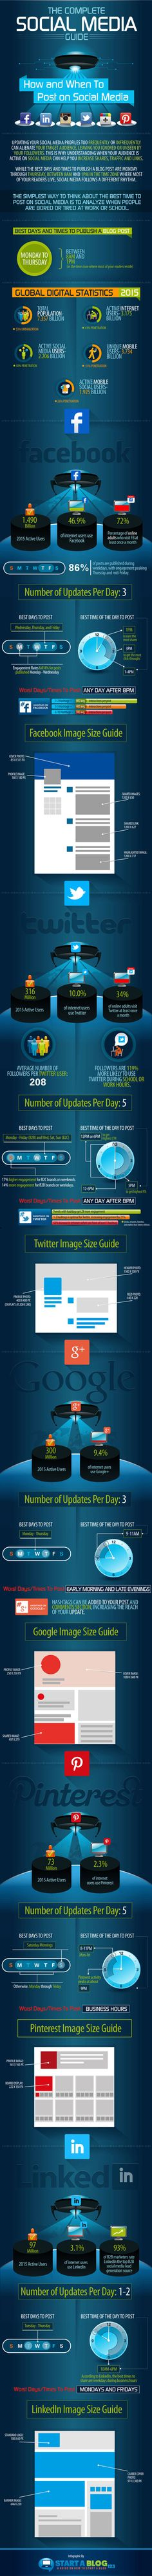 When And How To Update Your Social Media Social media has become a hugely important tool for musicians but, like any tool, using it correctly is critical to optimizing its effectiveness. In this infographic, we examine how and at what times artists should post on social media, based on the platform and content in question.